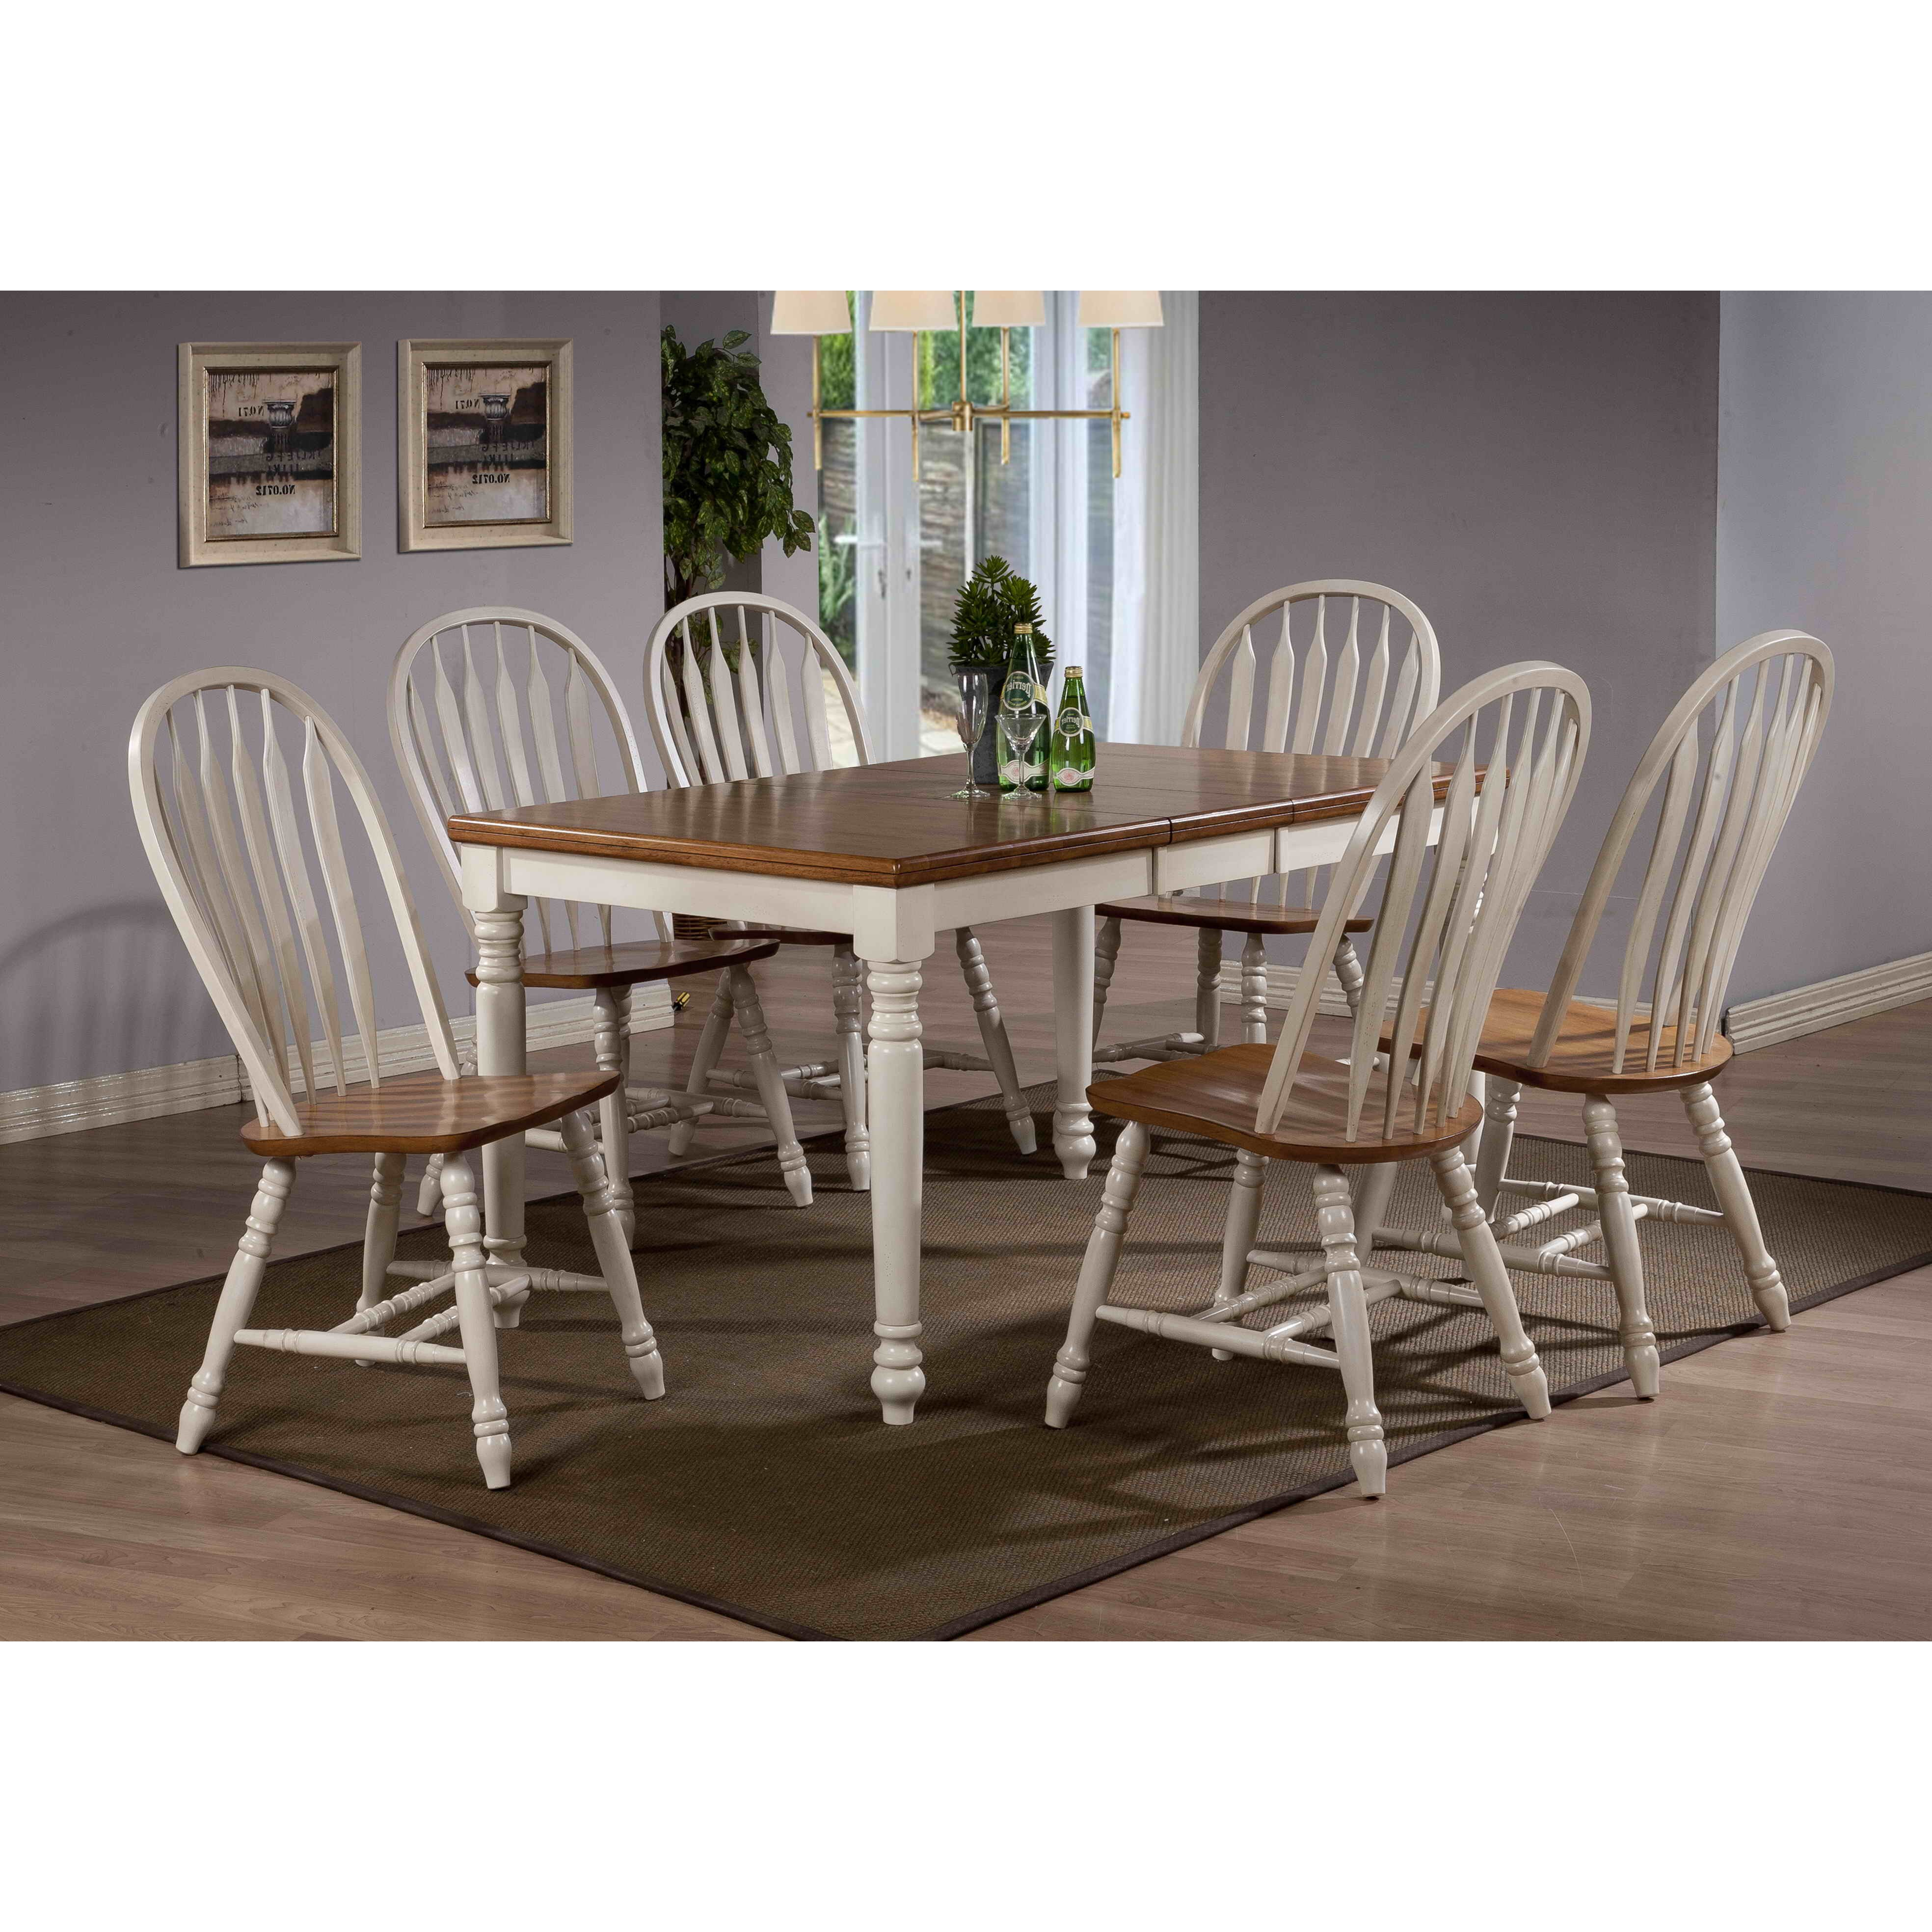 Eci Furniture Four Seasons Dining Table Reviews Wayfair Supply